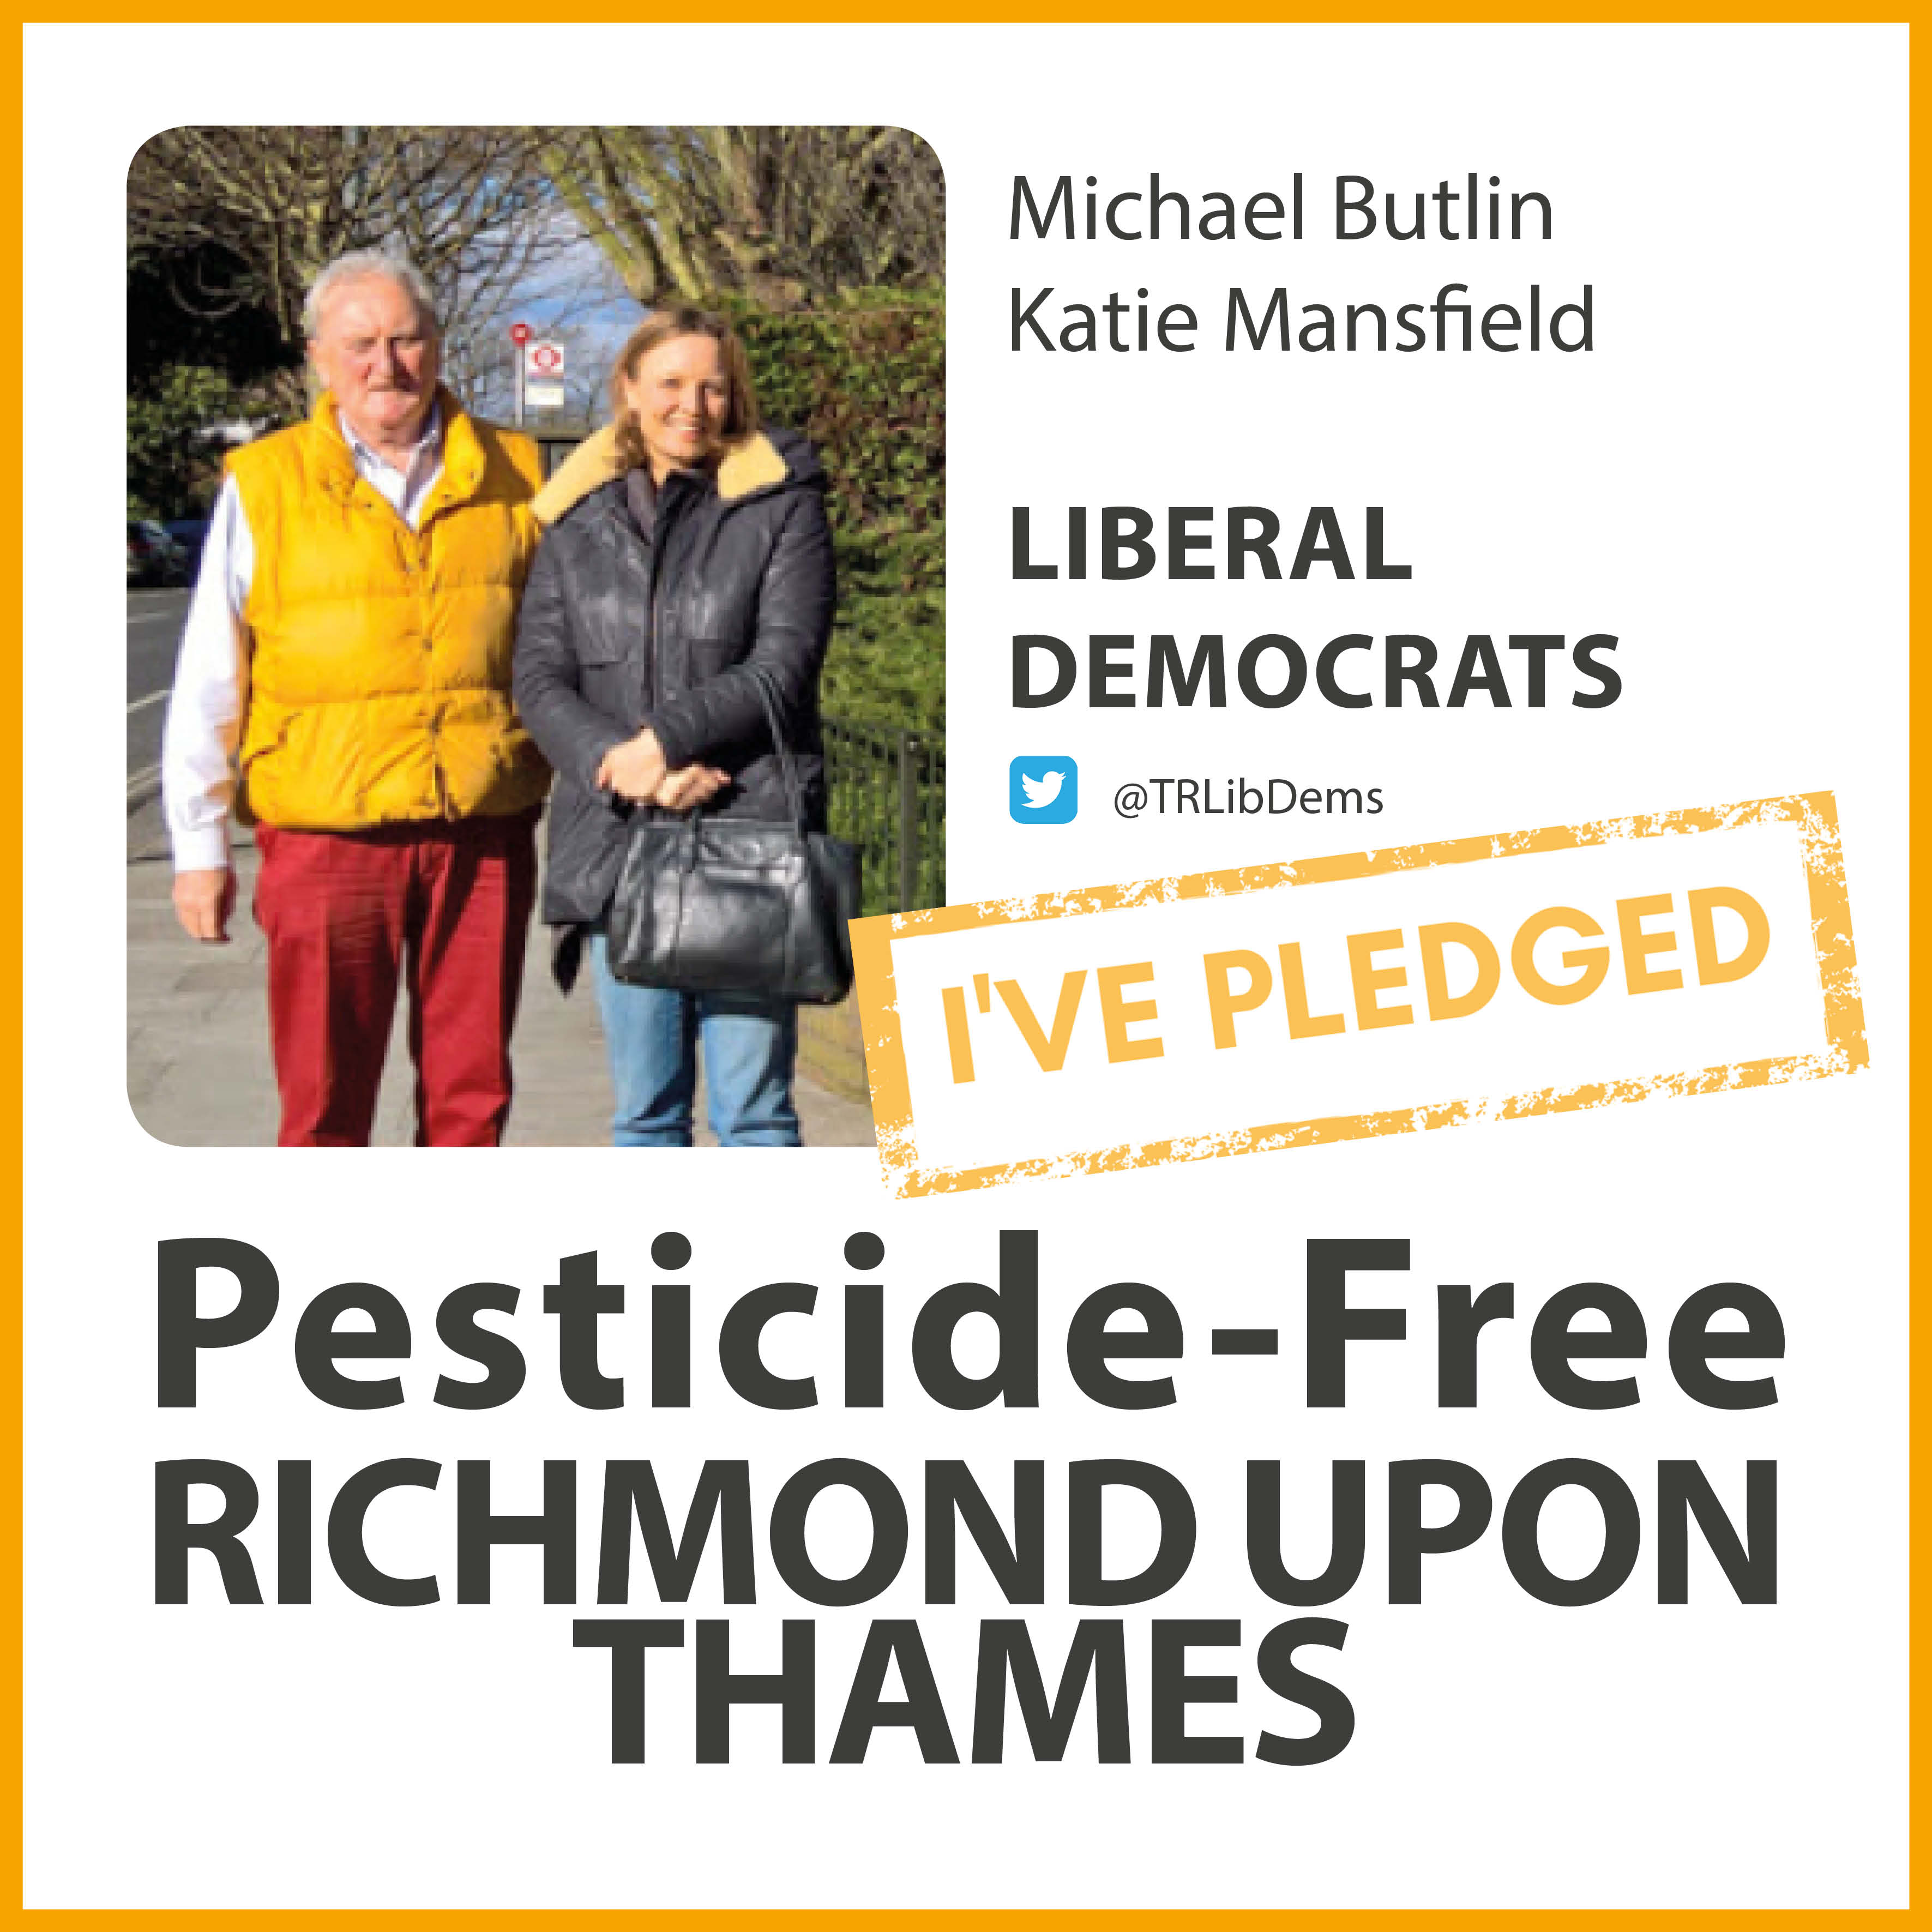 South Twickenham Lib Dems have taken the pesticide-free pledge